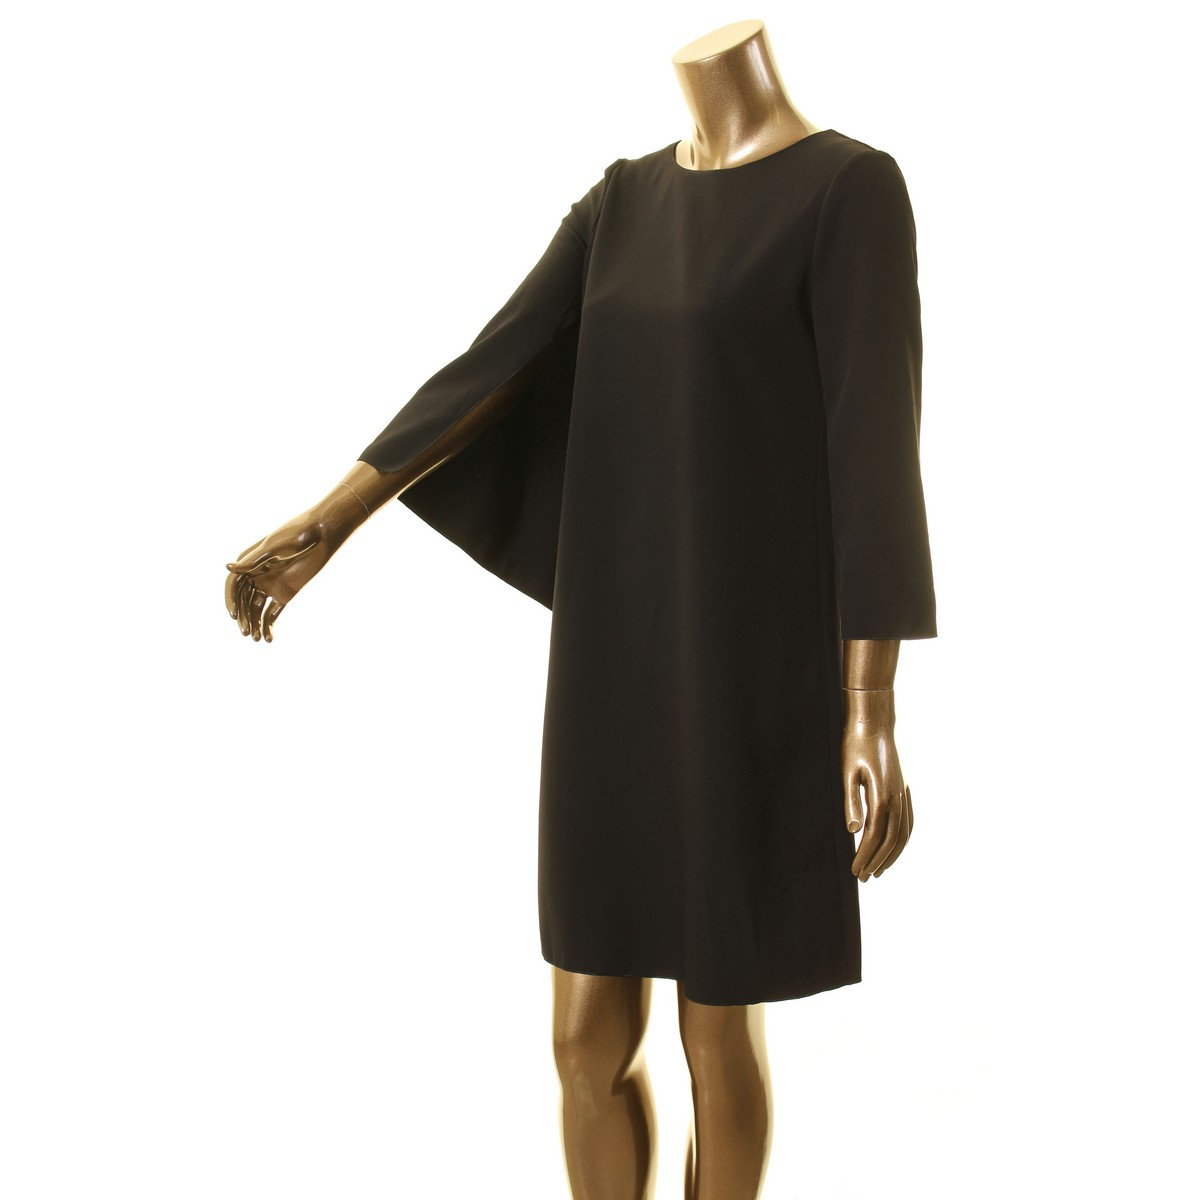 ANNE-KLEIN-NEW-Women-039-s-Cape-Crepe-Split-Sleeve-Shift-Dress-TEDO thumbnail 5